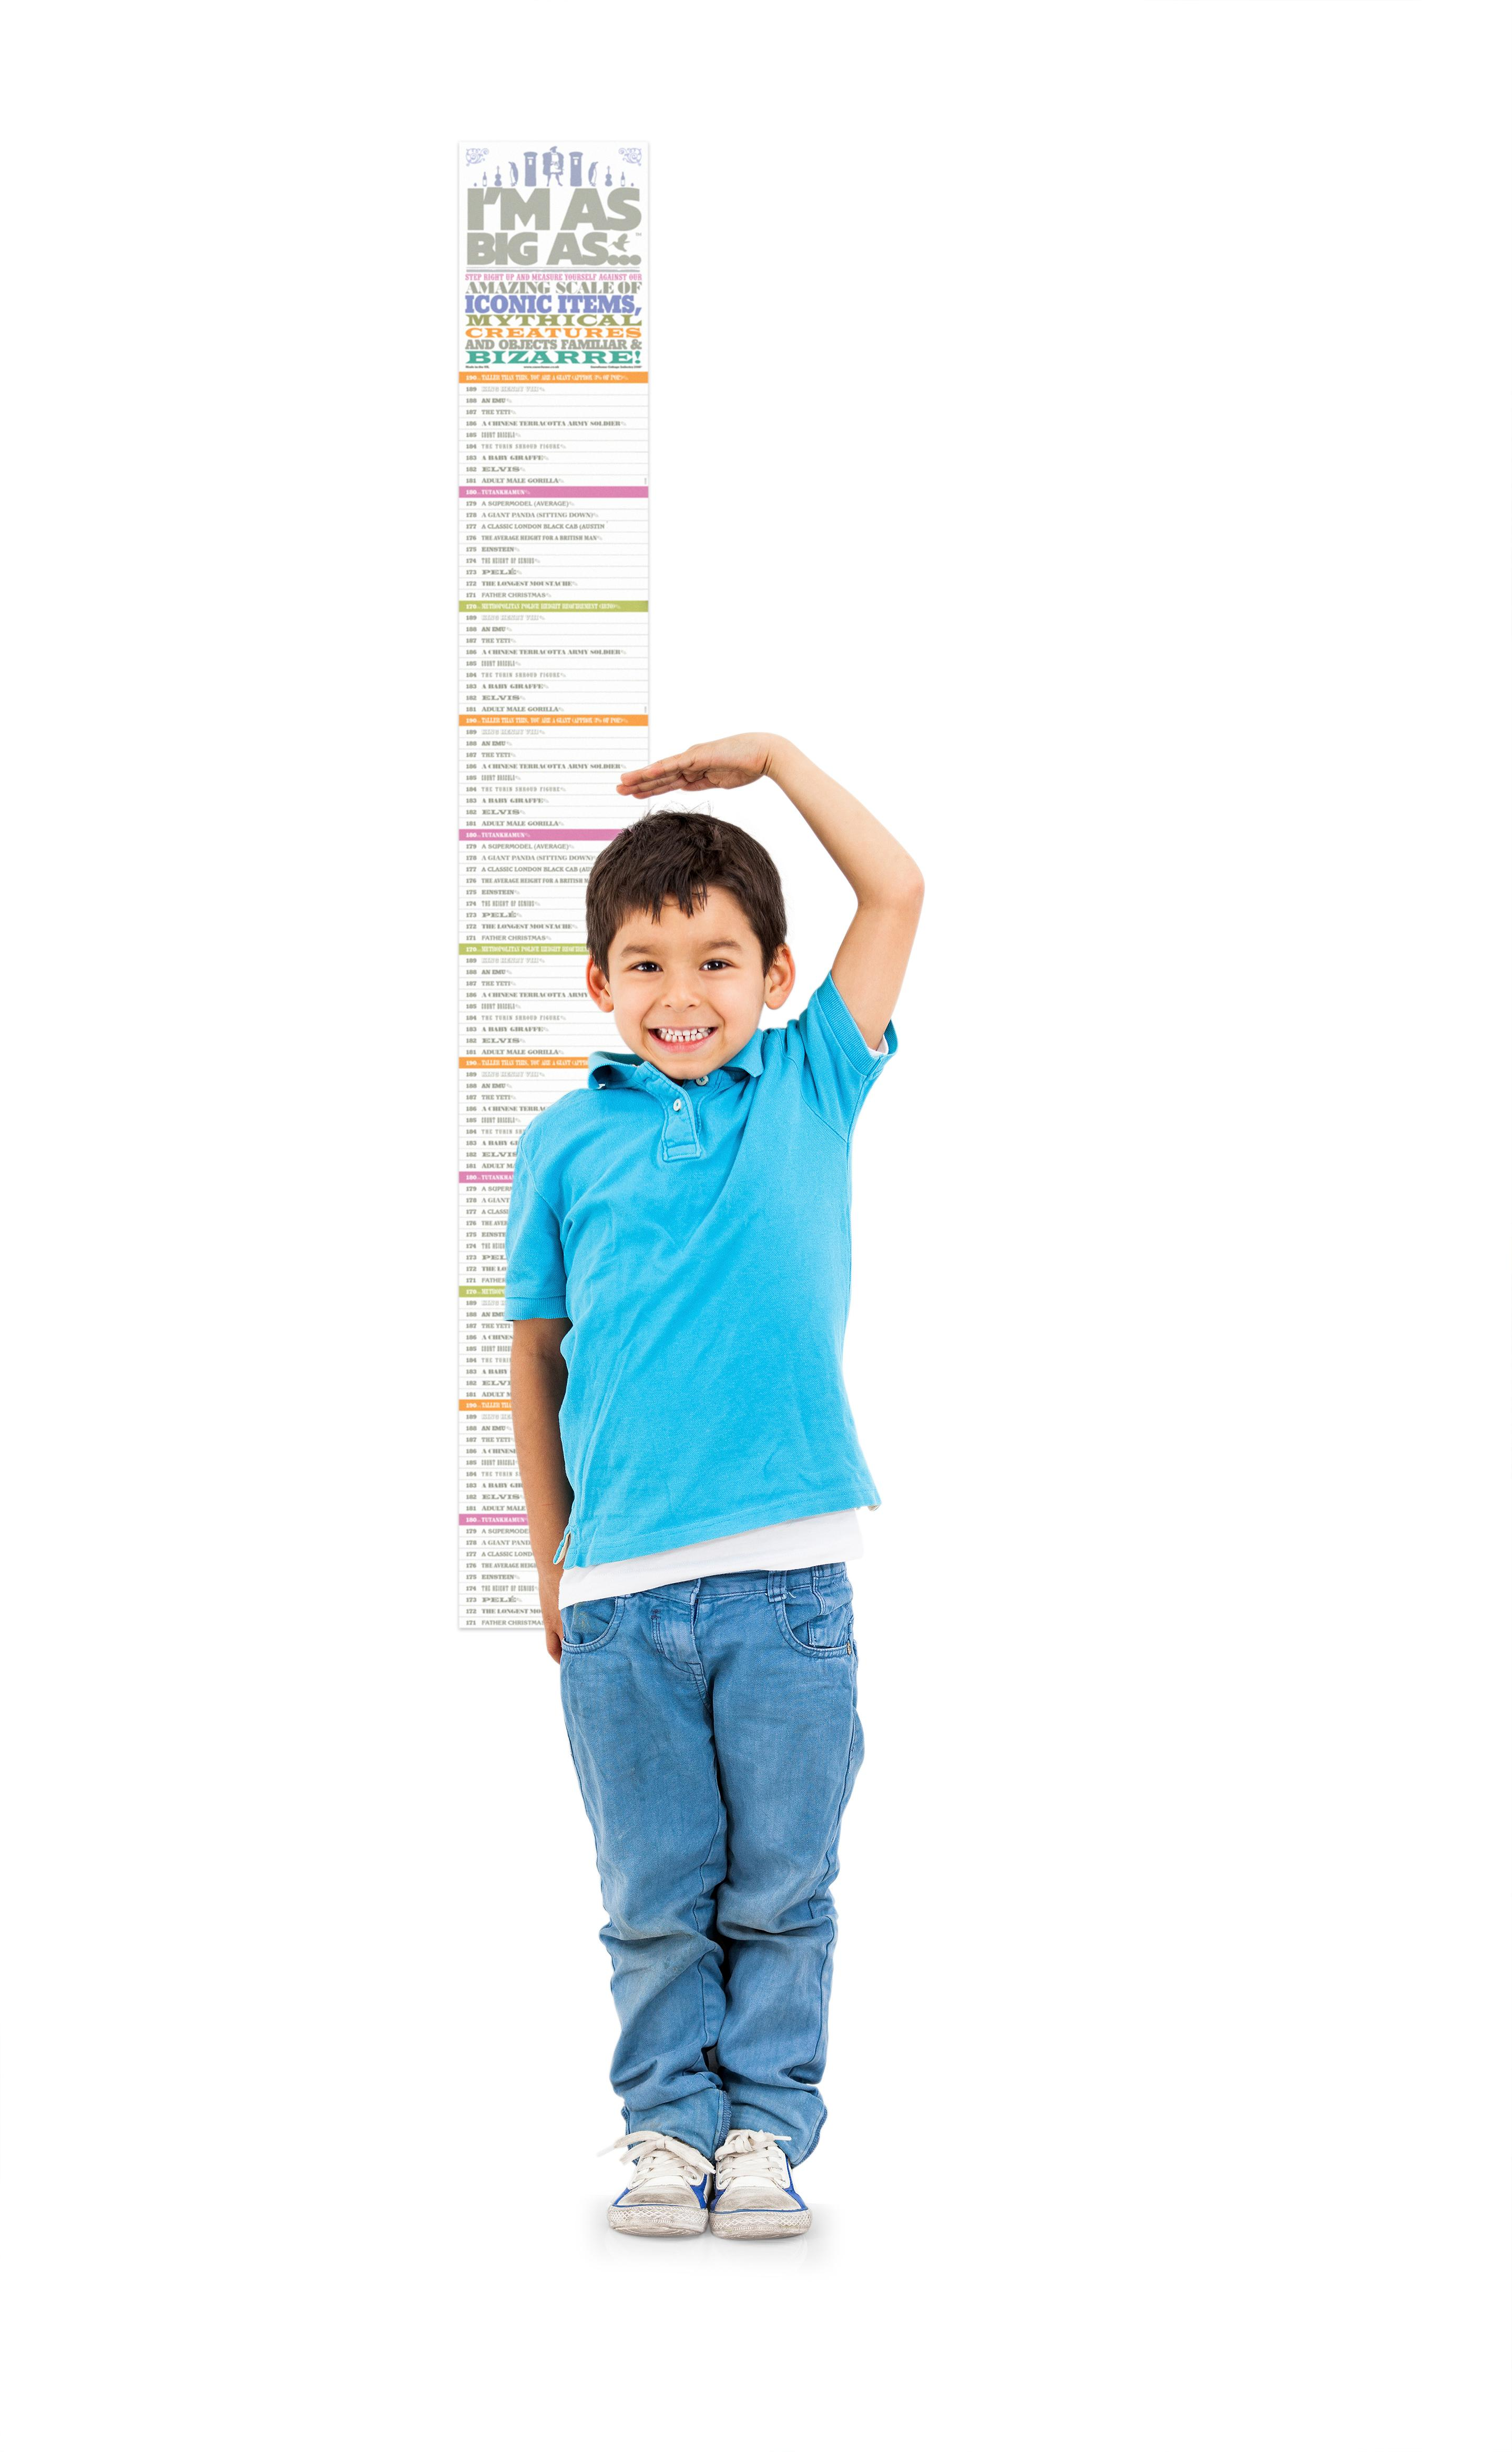 Im as big as height chart fun gift for growing kids luckies from the manufacturer height chart nvjuhfo Gallery